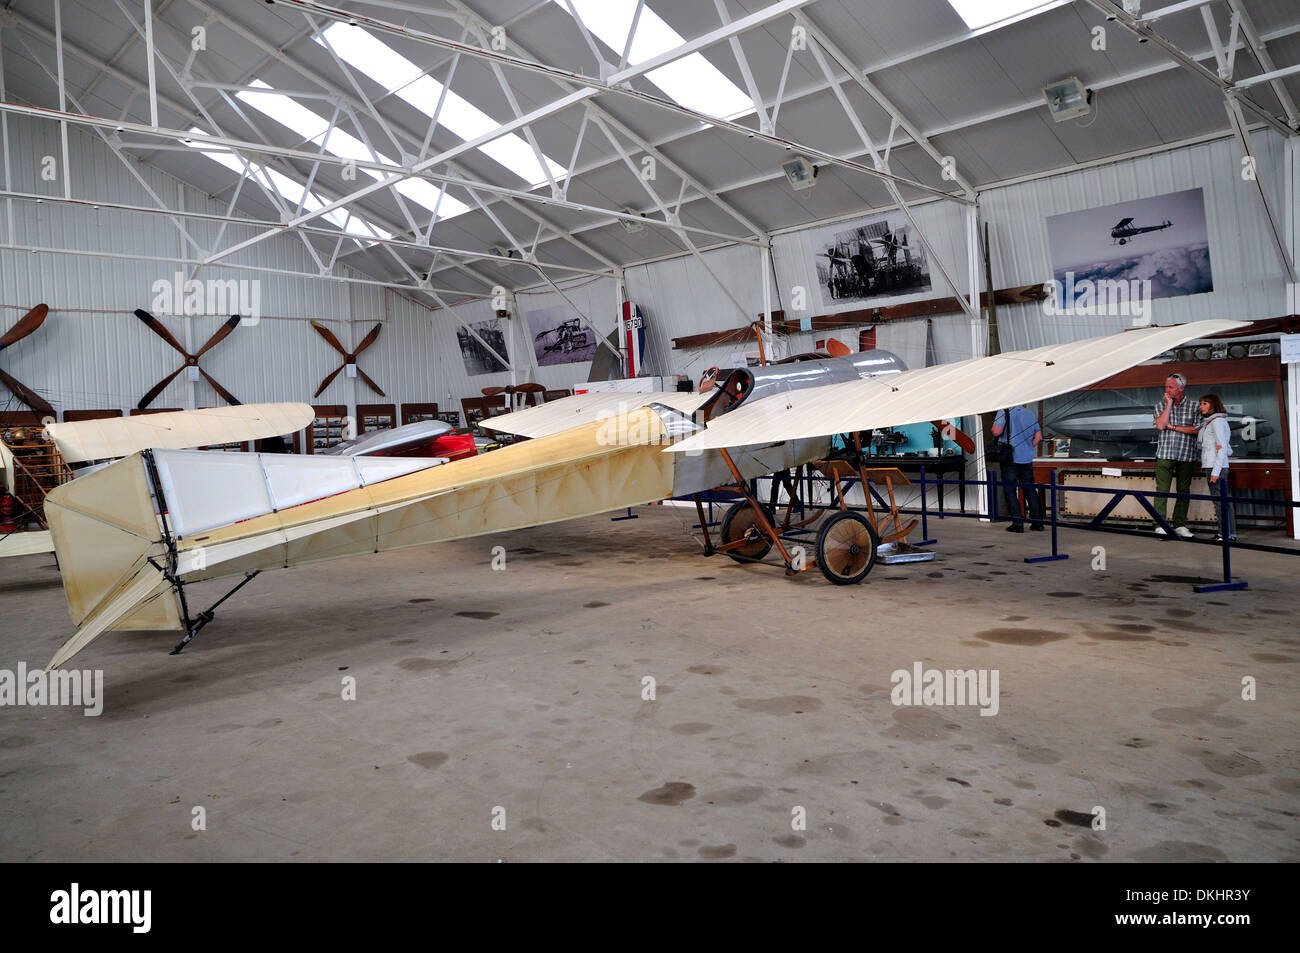 Blackburn type D monoplane in the hanger.Owned by the Shuttleworth collection.Britain's oldest airworthy aircraft.Built in 1912. - Stock Image